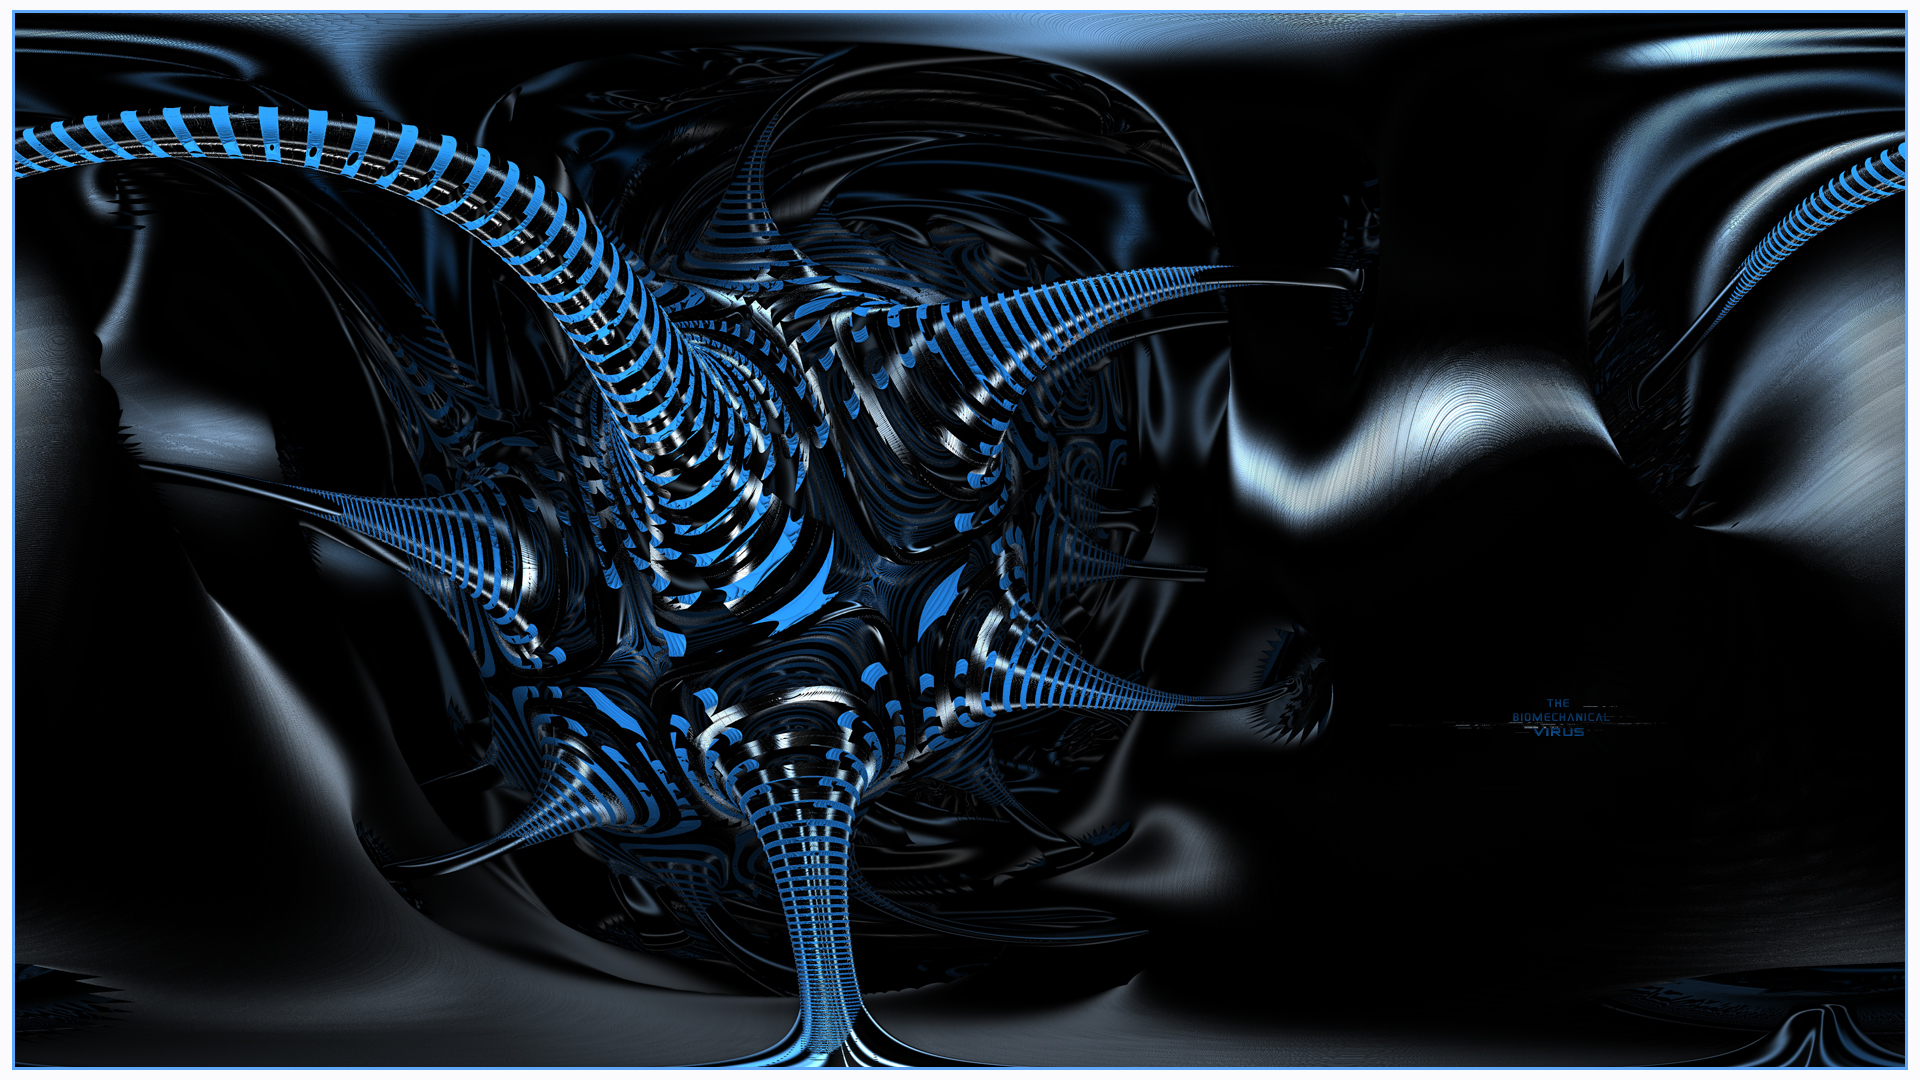 The BioMechanical Virus by viperv6